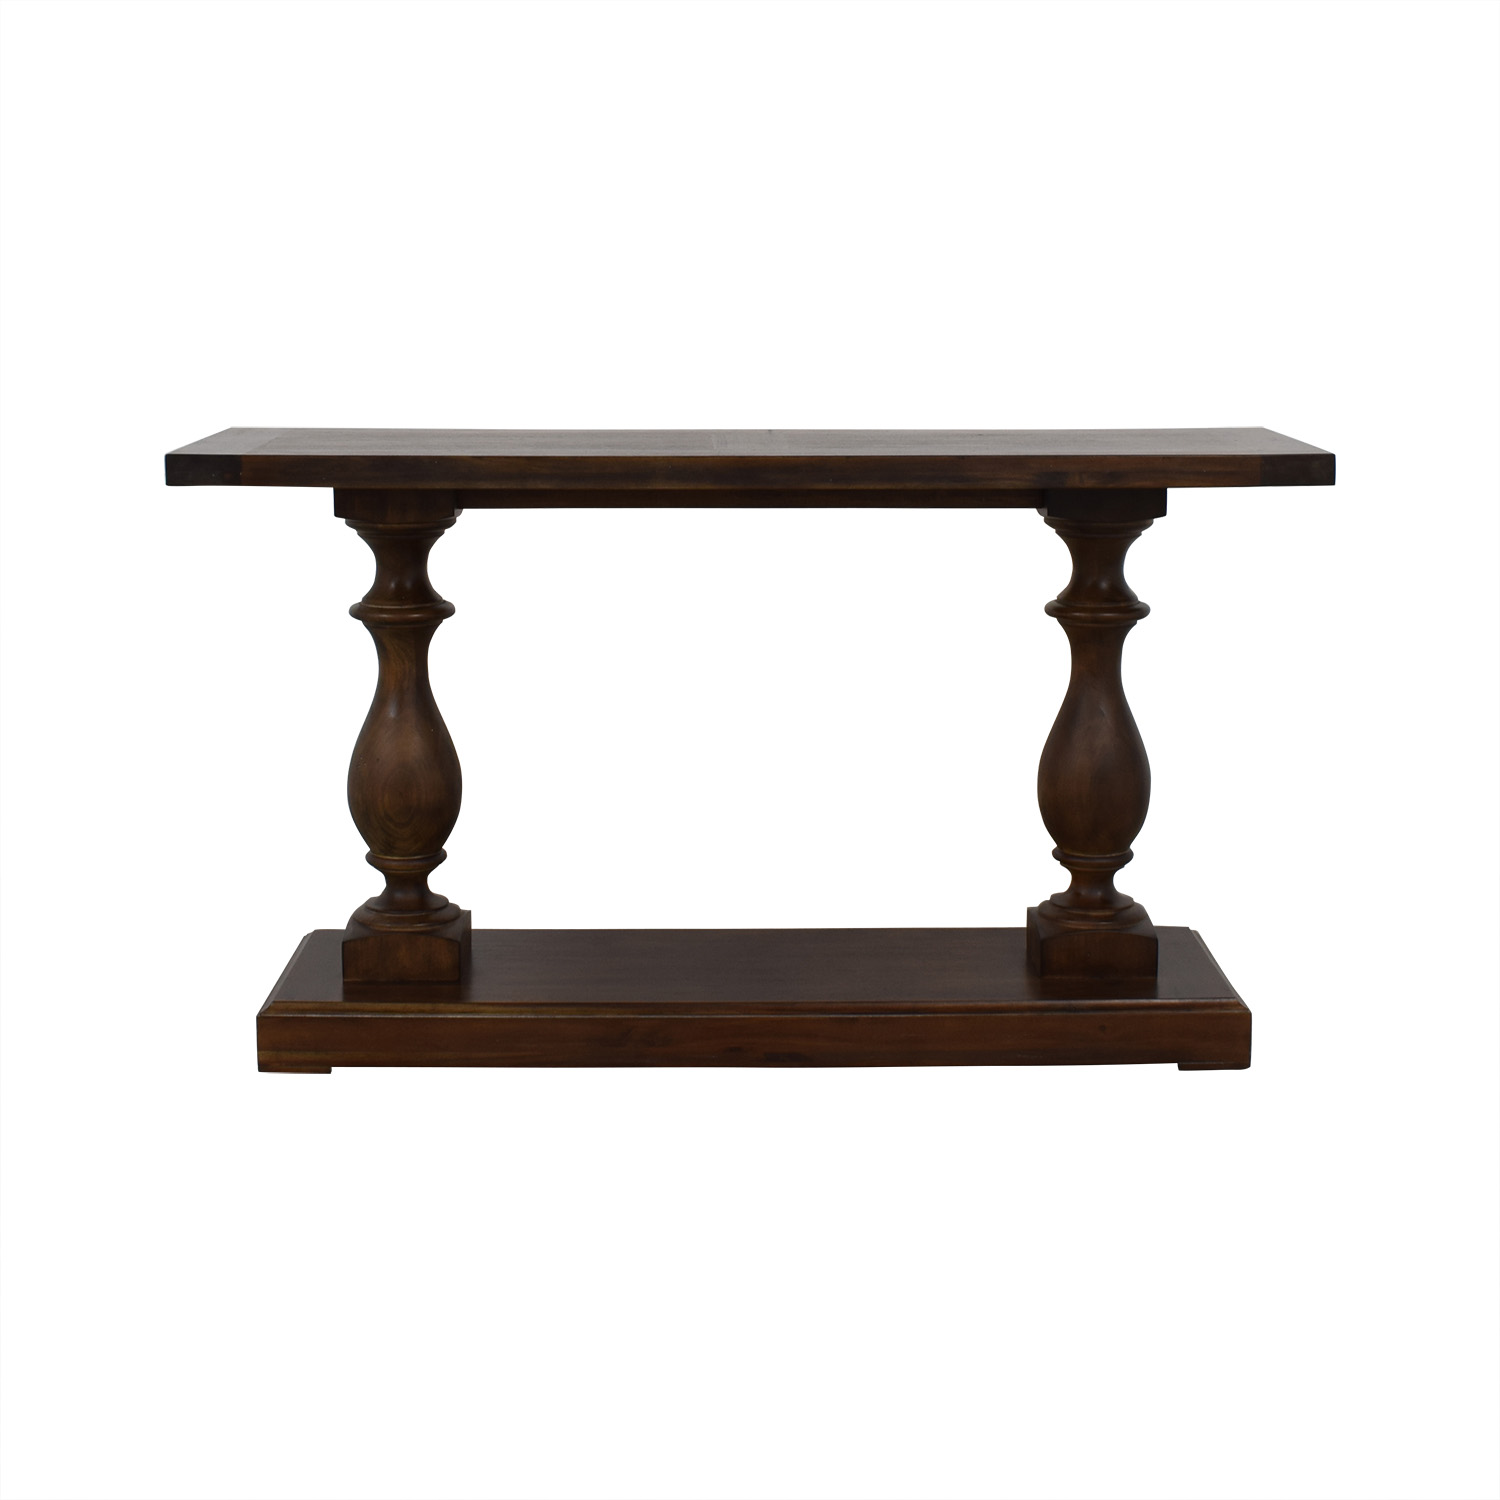 Restoration Hardware Restoration Hardware 17th C. Monastery Console Table price